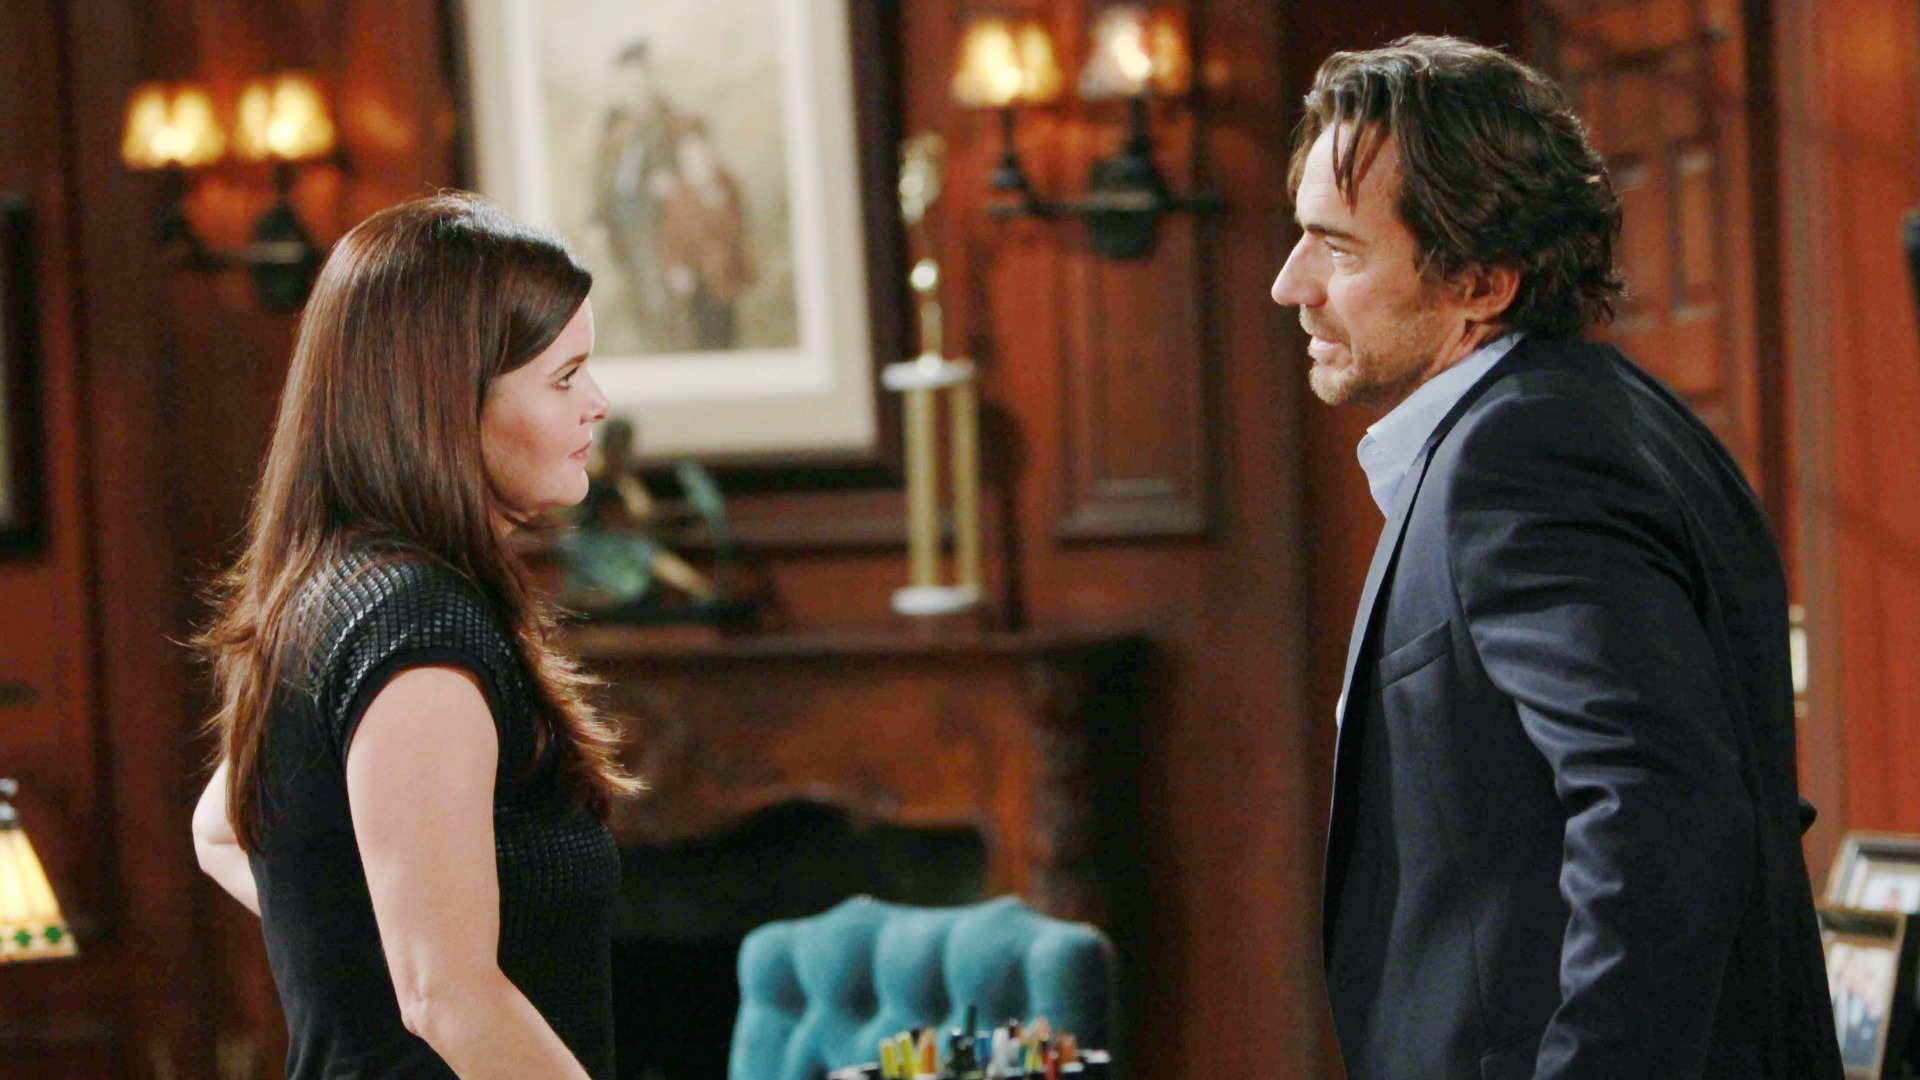 Ridge reprimands Katie for intruding in his business and causing a disturbance in his family.